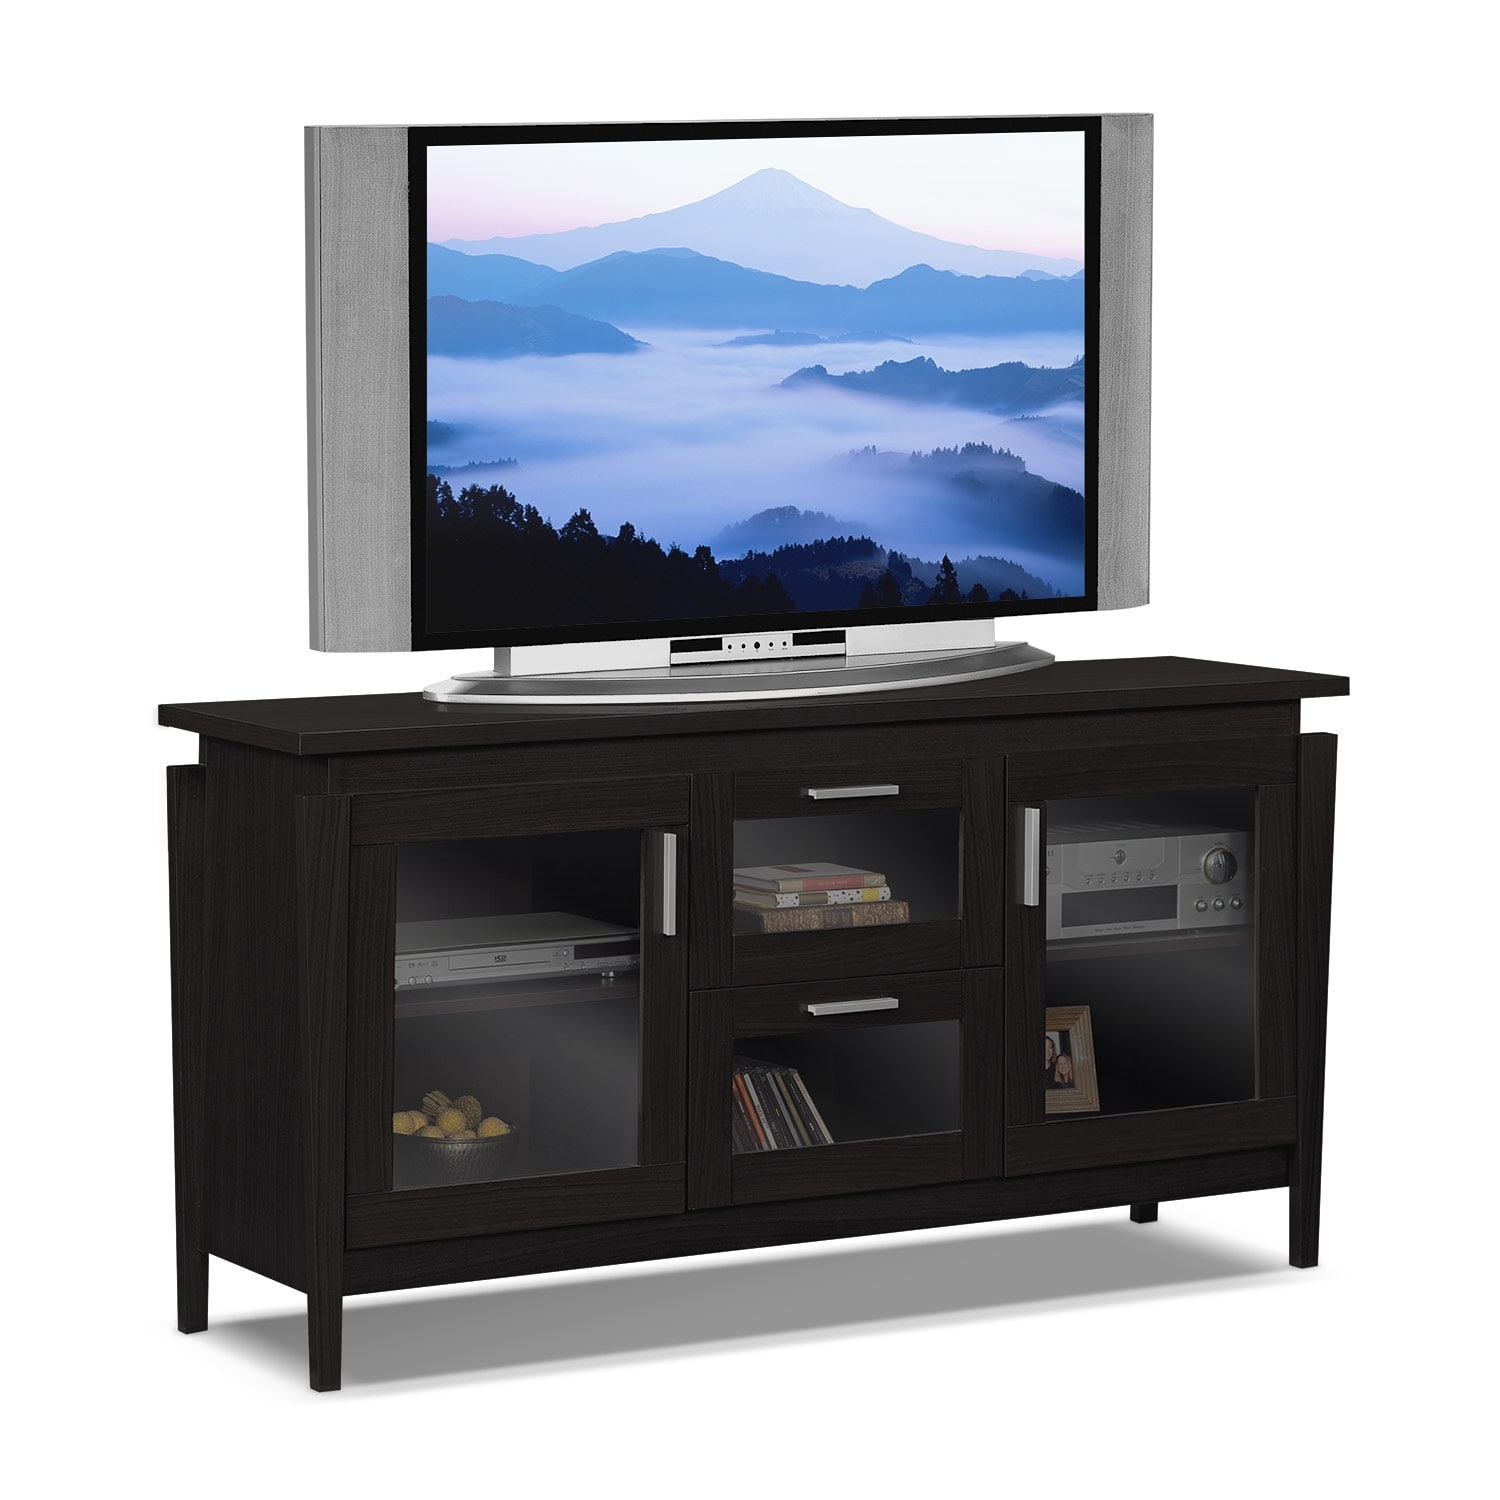 saber 60quot tv stand merlot american signature furniture With american home furniture tv stands